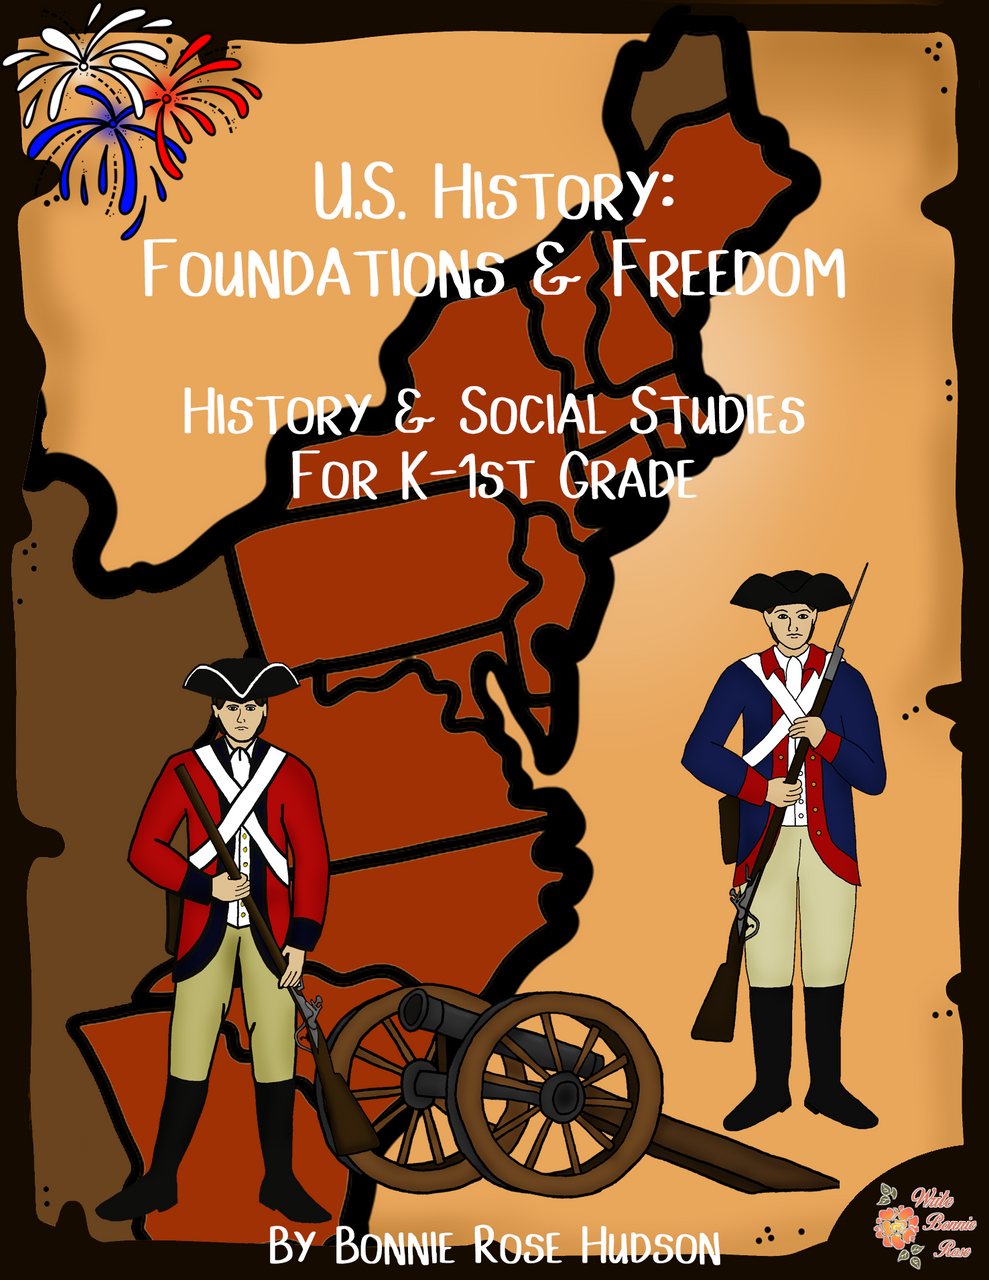 U.S. History: Foundations and Freedom